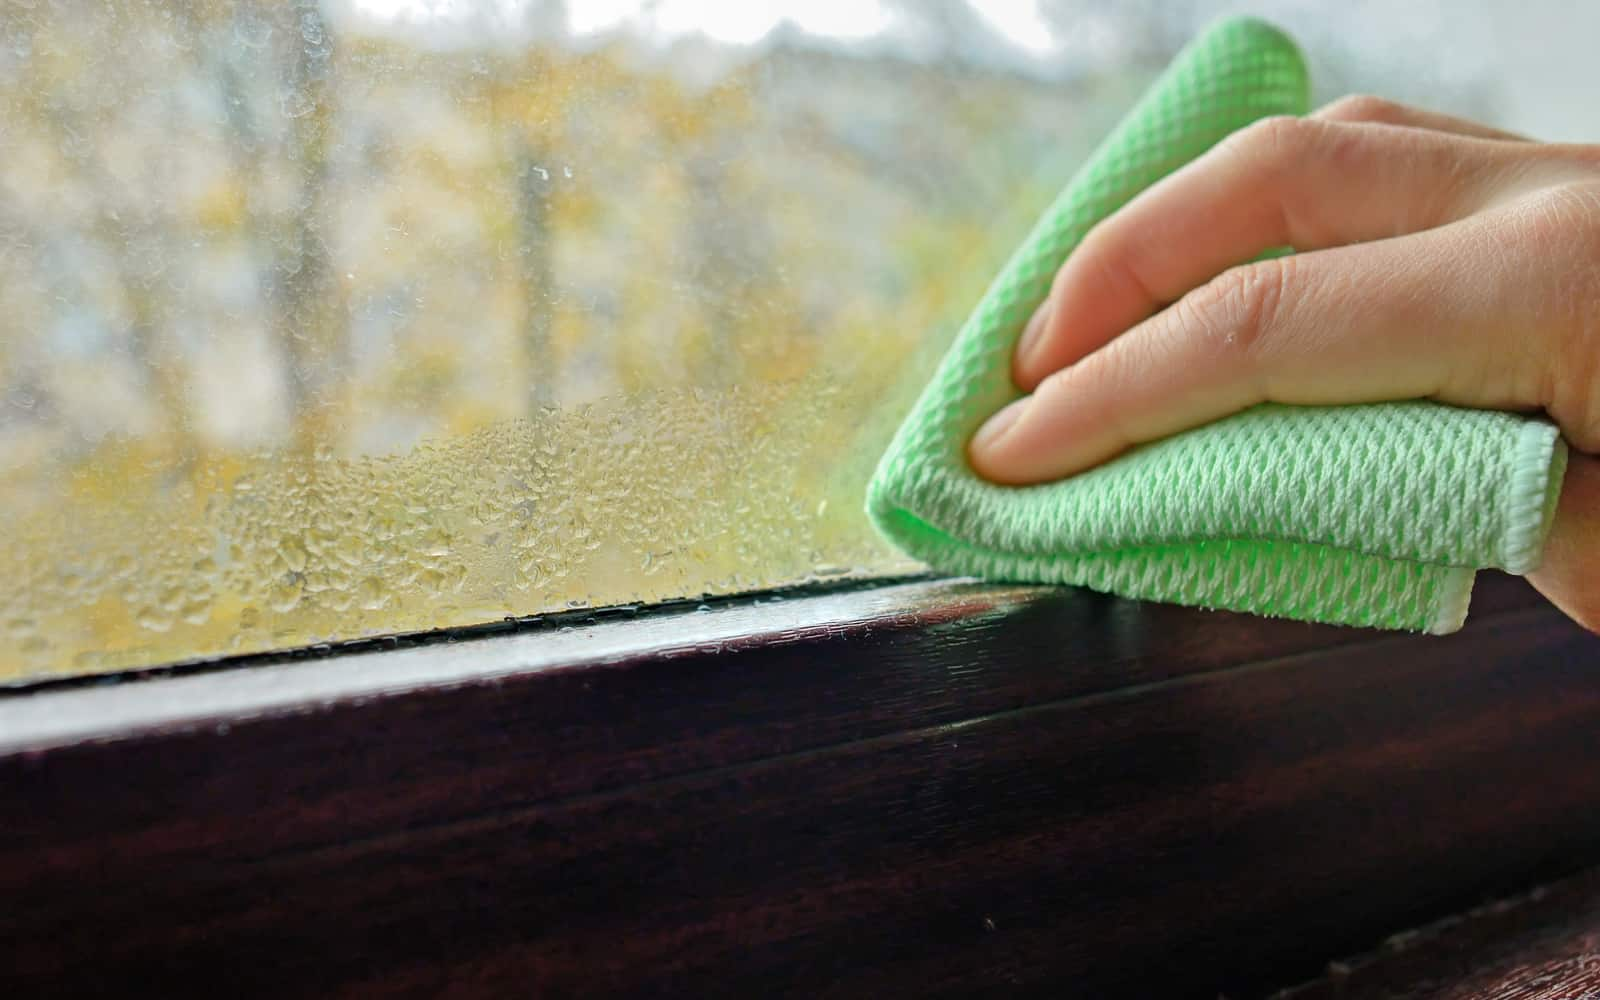 How to deal with condensation on a canal boat?